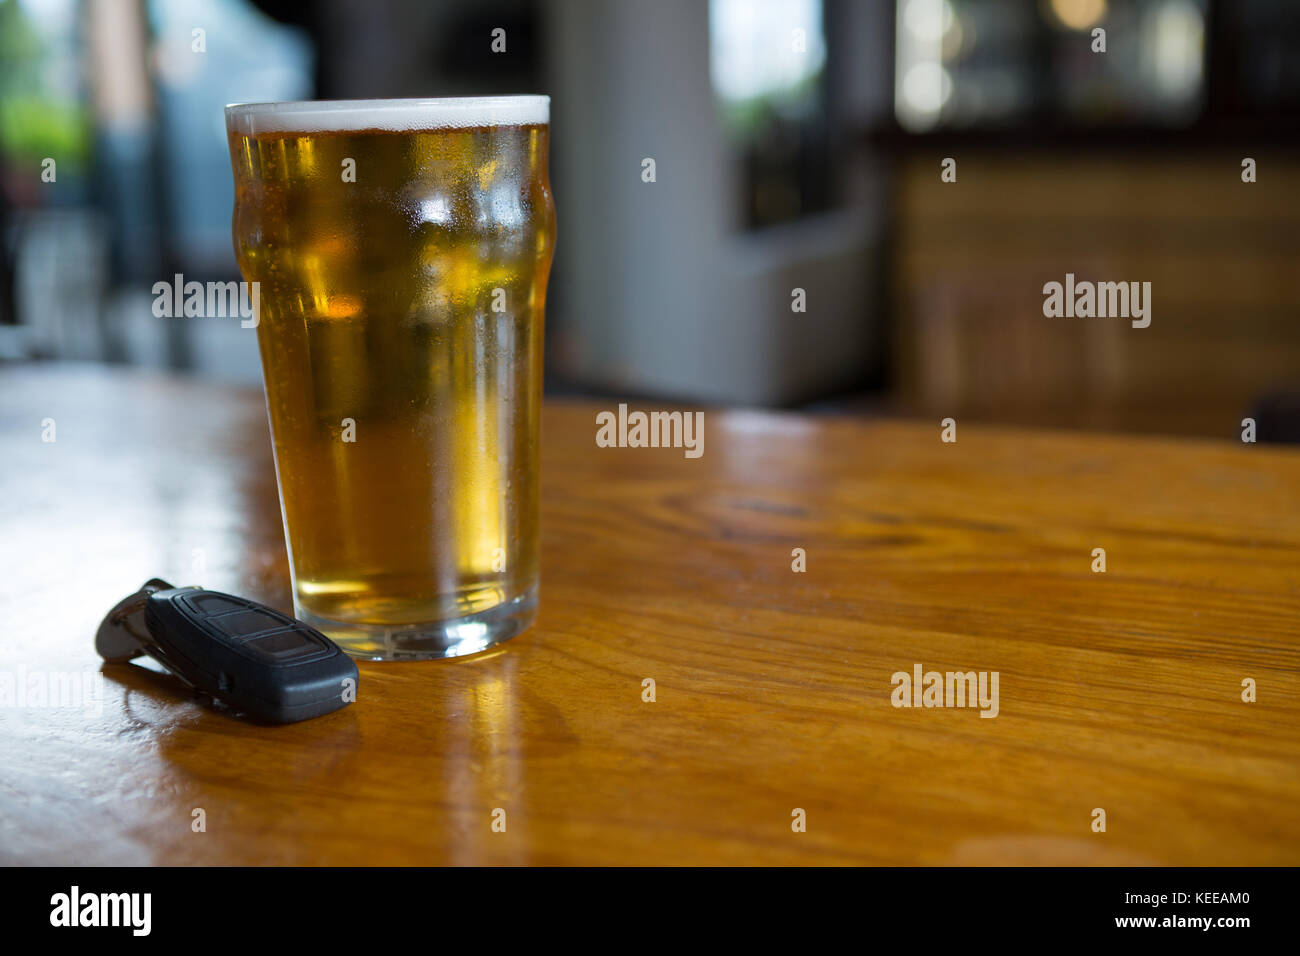 Close-up of beer glass on the counter in bar - Stock Image